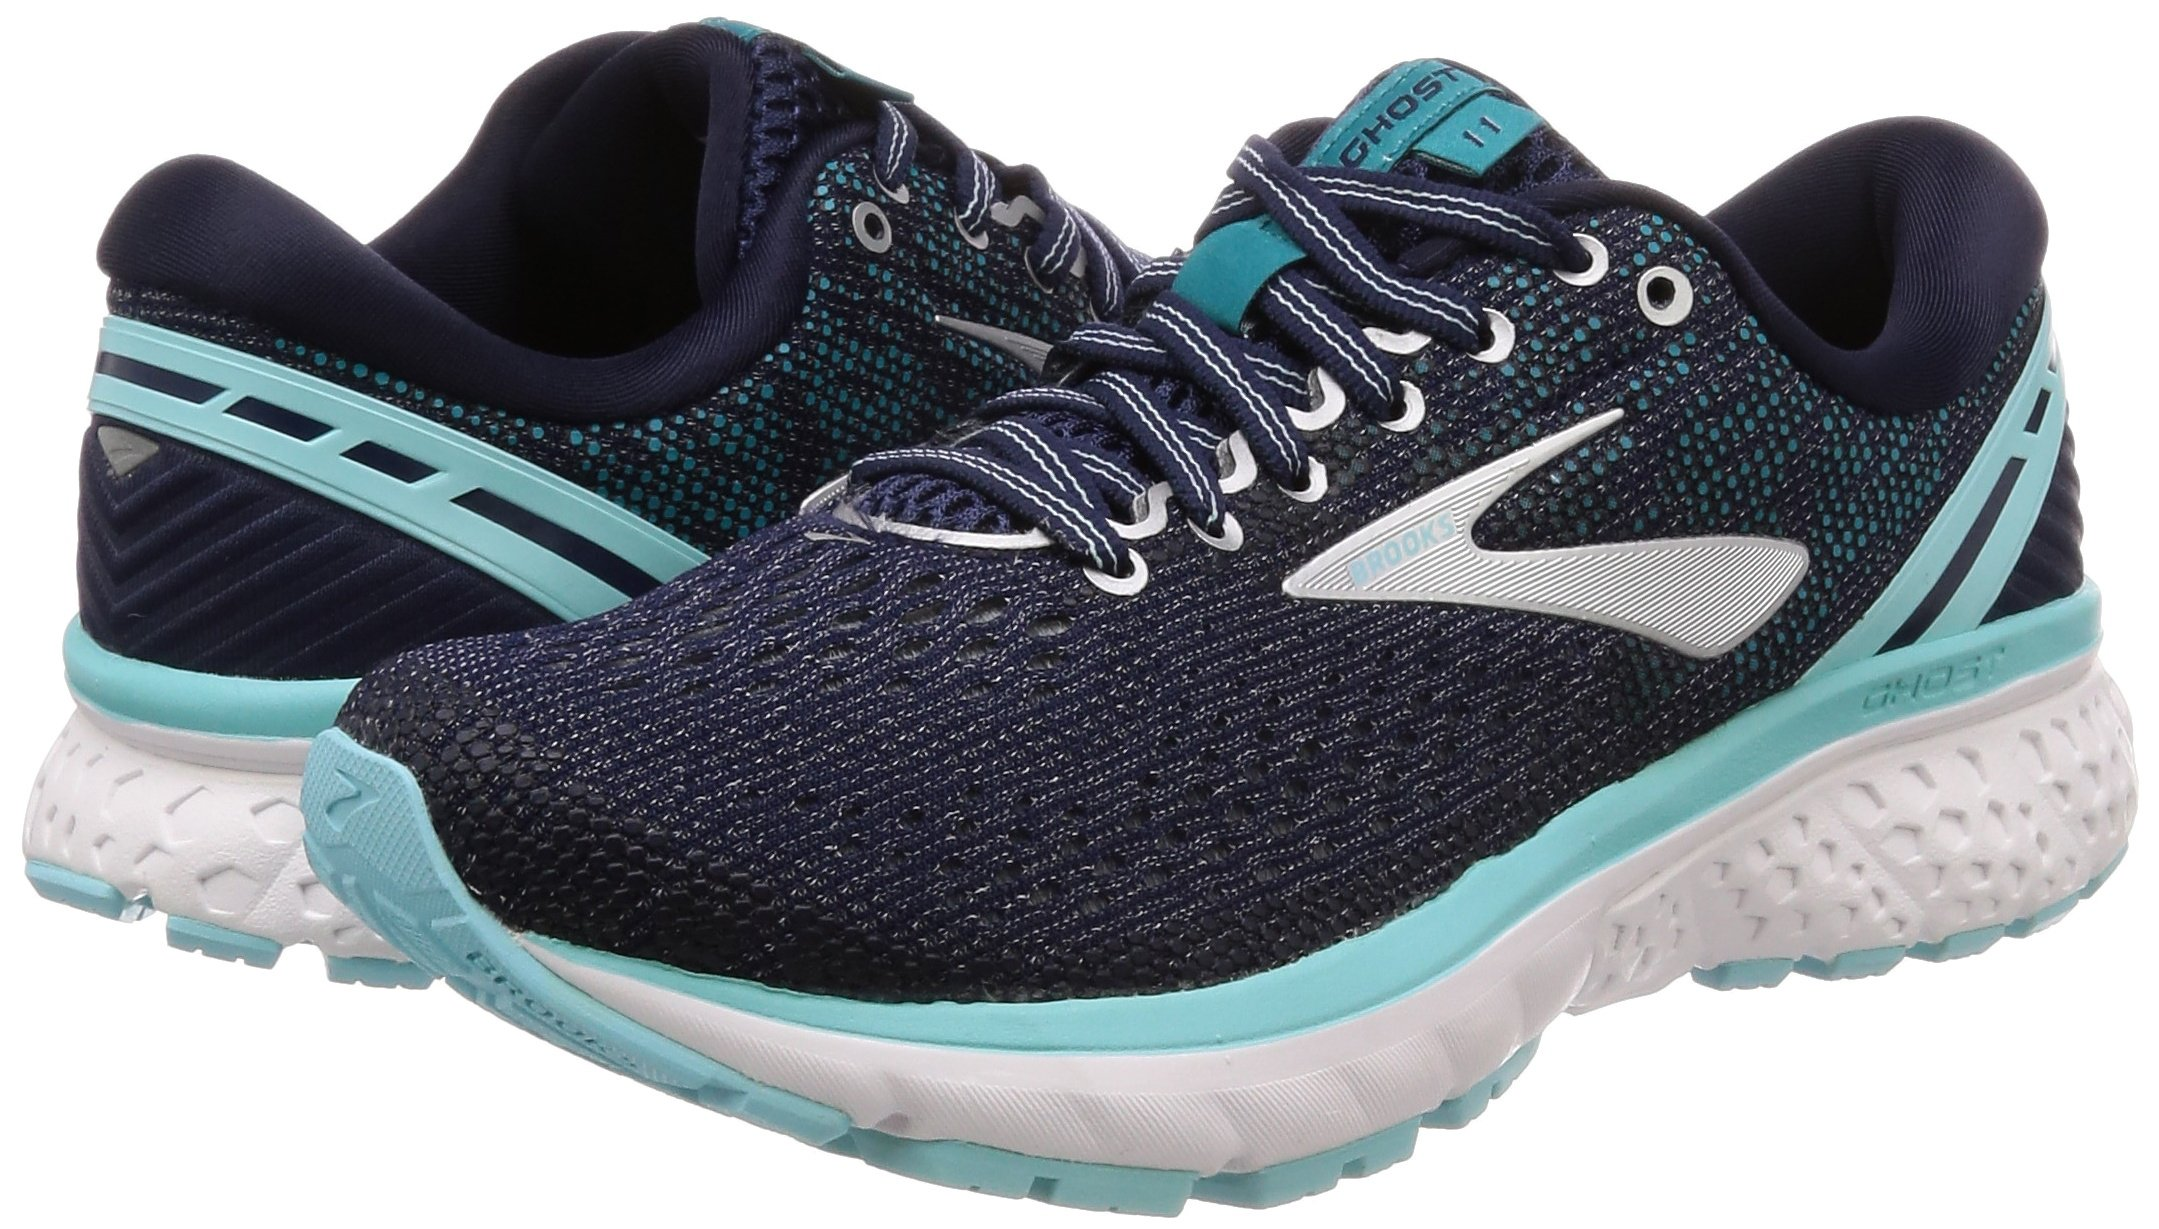 Brooks Womens Ghost 11 Running Shoe - Navy/Grey/Blue - D - 5.5 by Brooks (Image #5)